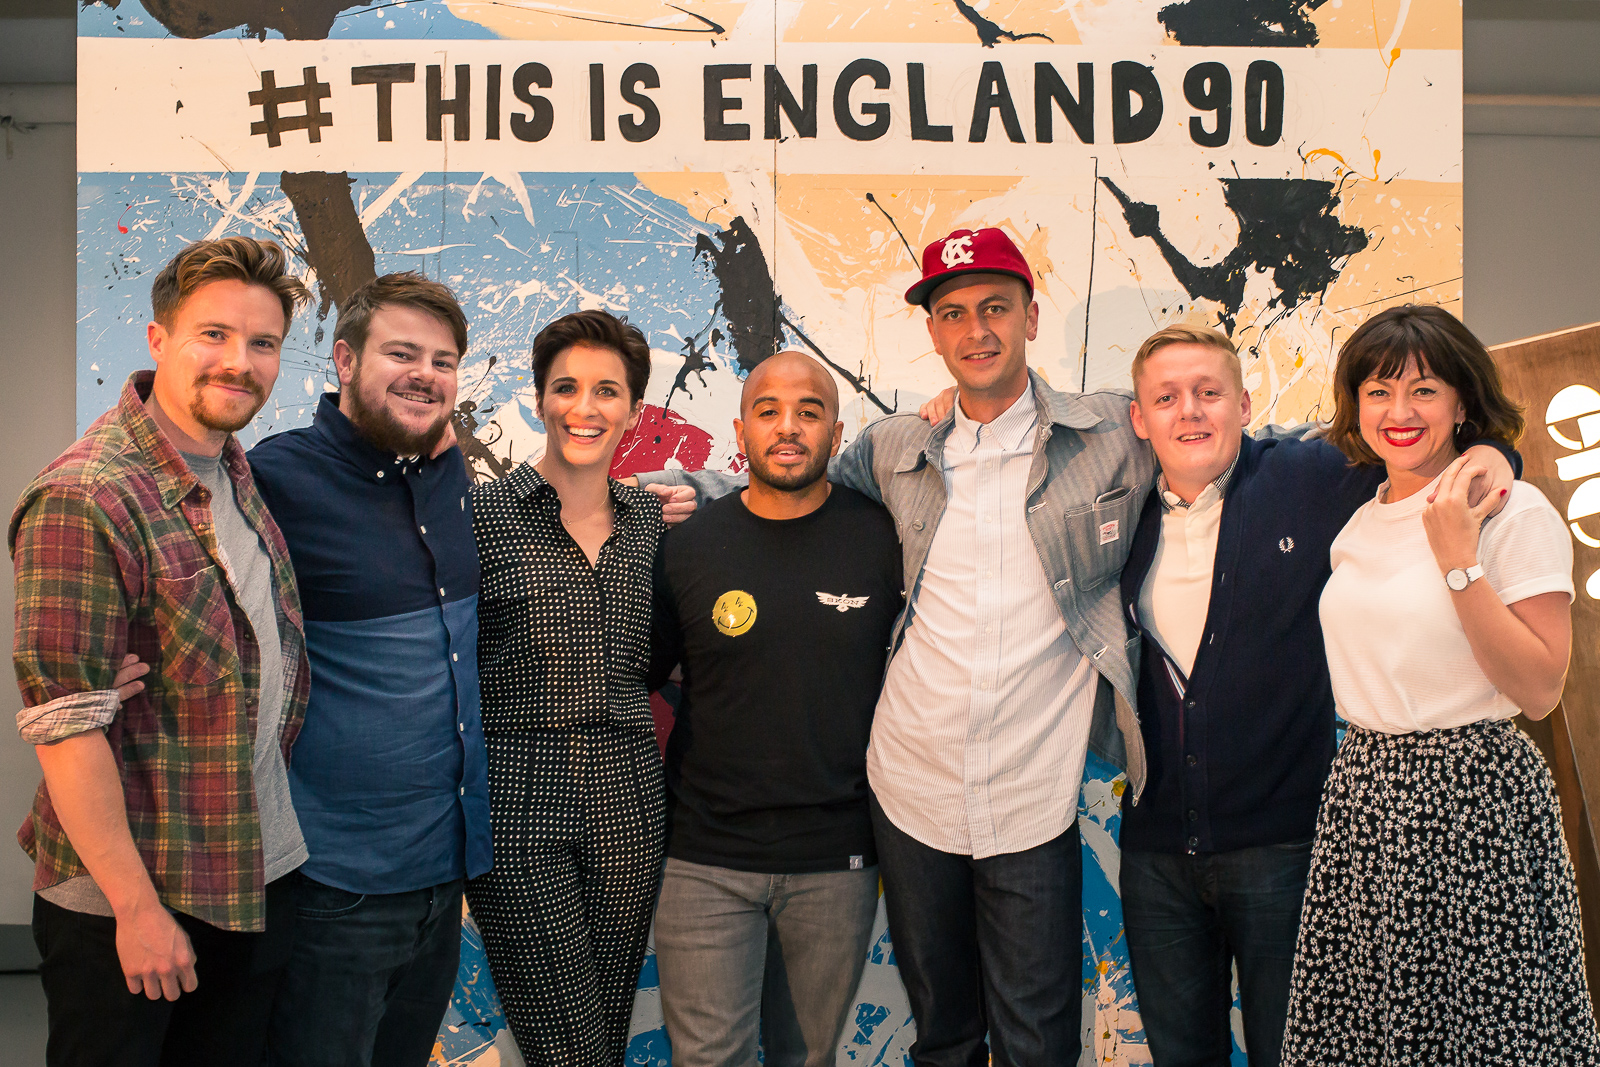 Exclusive: This Is England '90 cast sit down